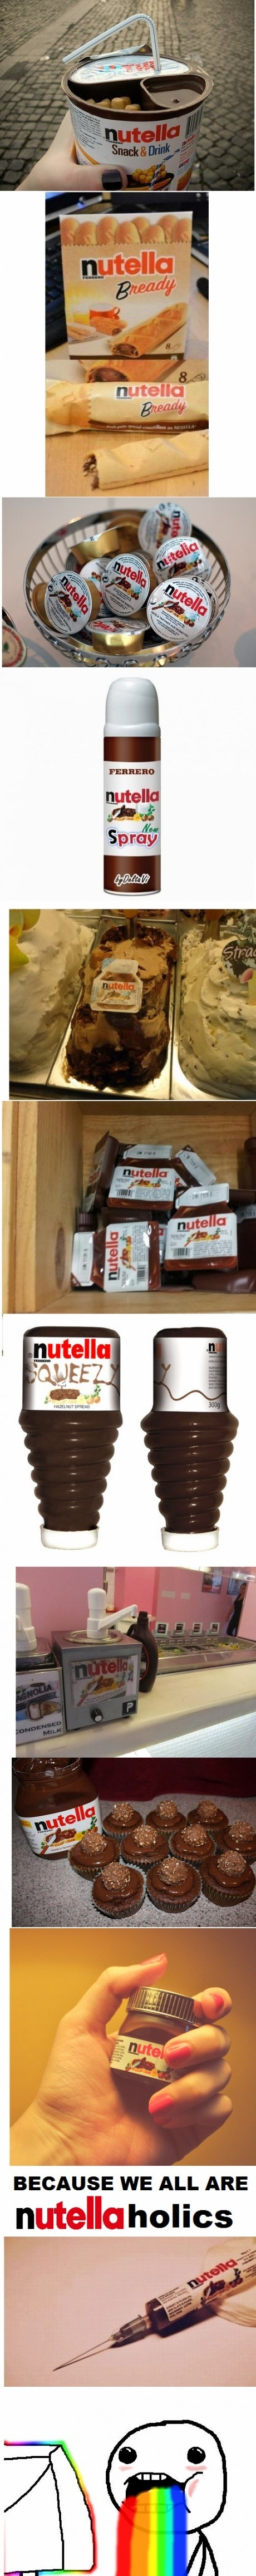 bbf8d2 because-we-are-all-nutellaholics